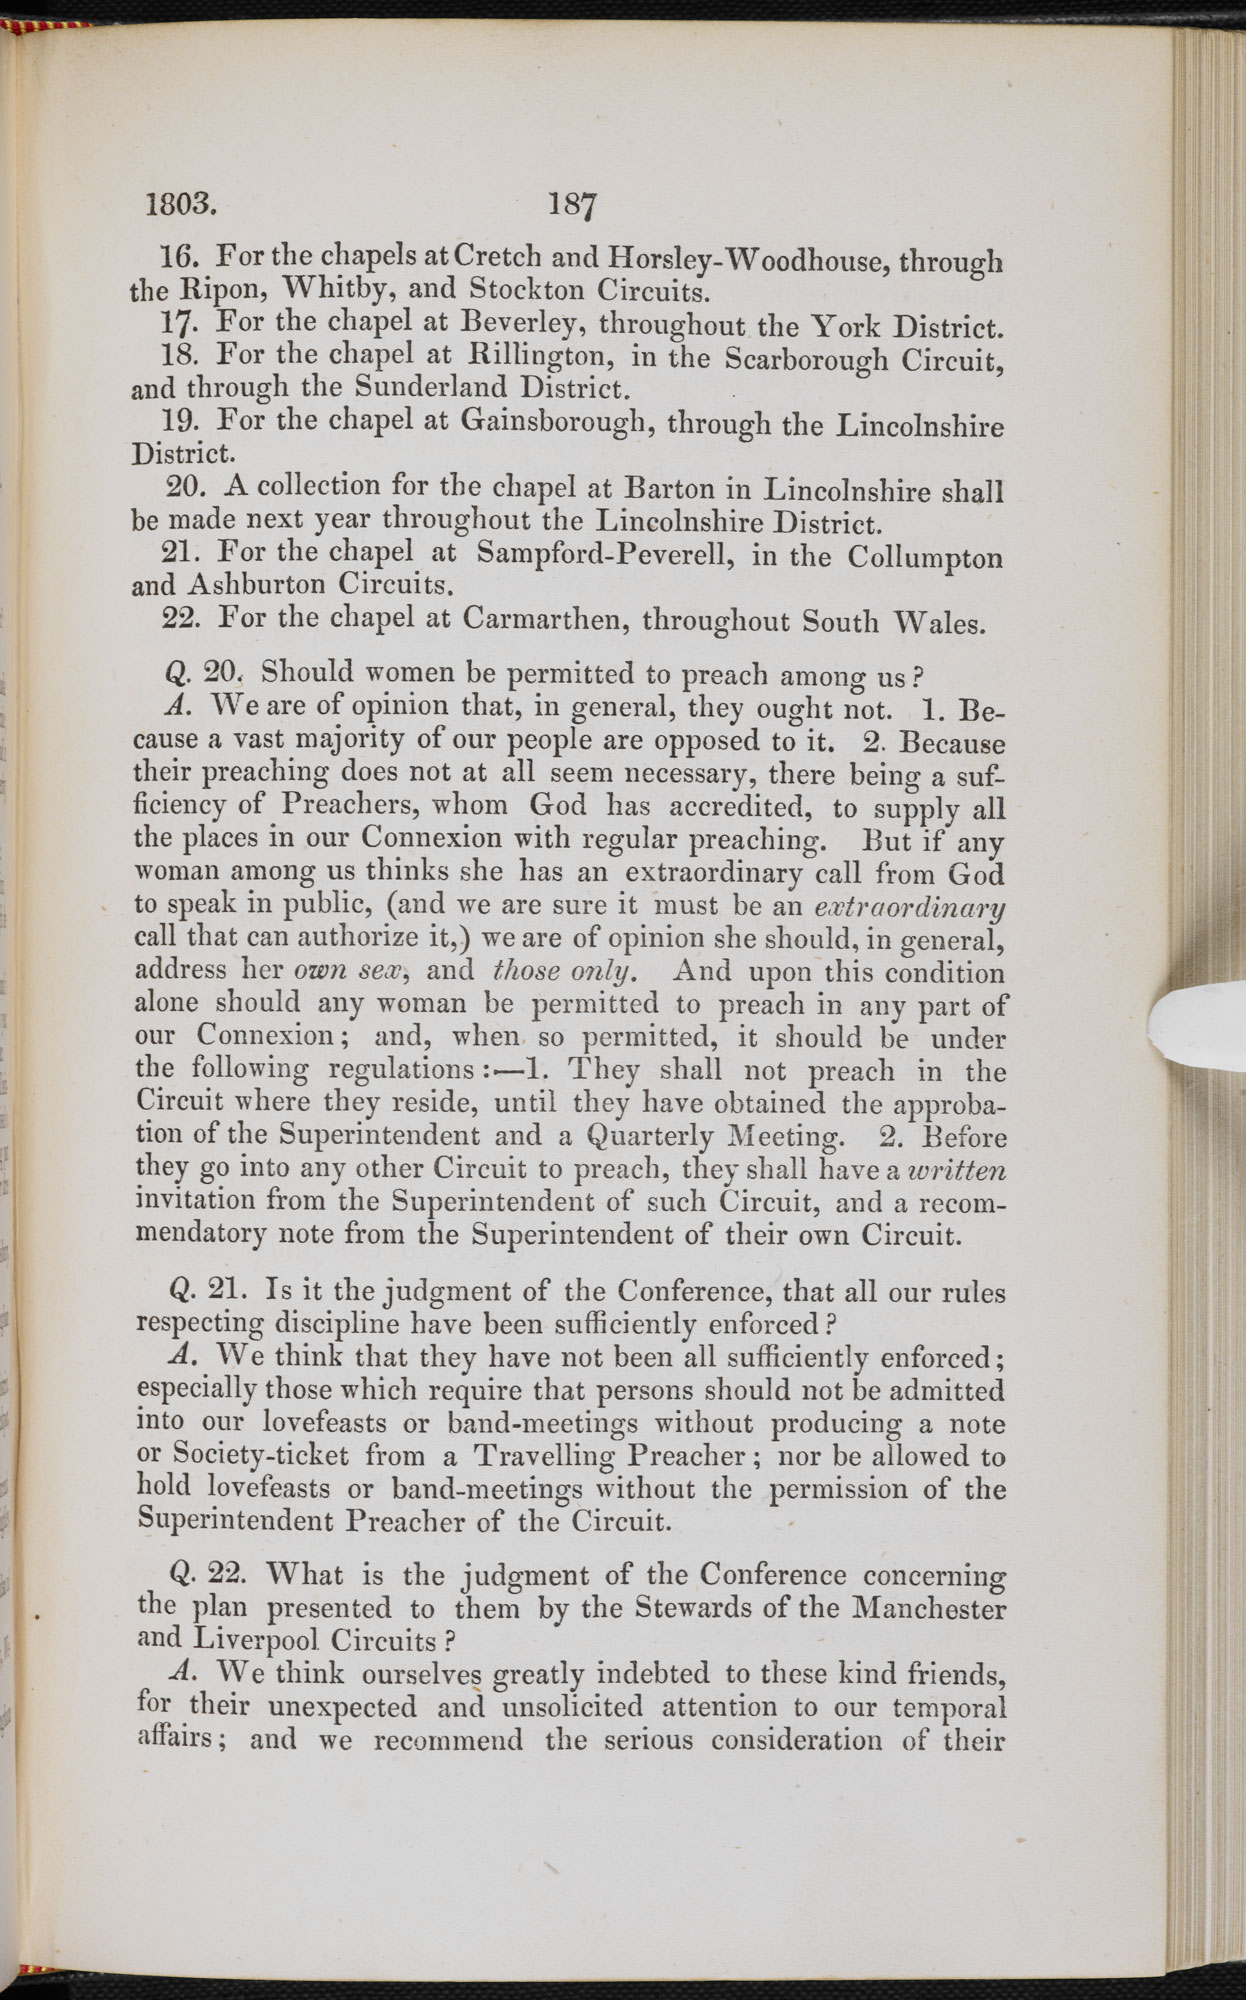 Minutes of the 1803 Methodist Conference [page: vol. II p. 187]